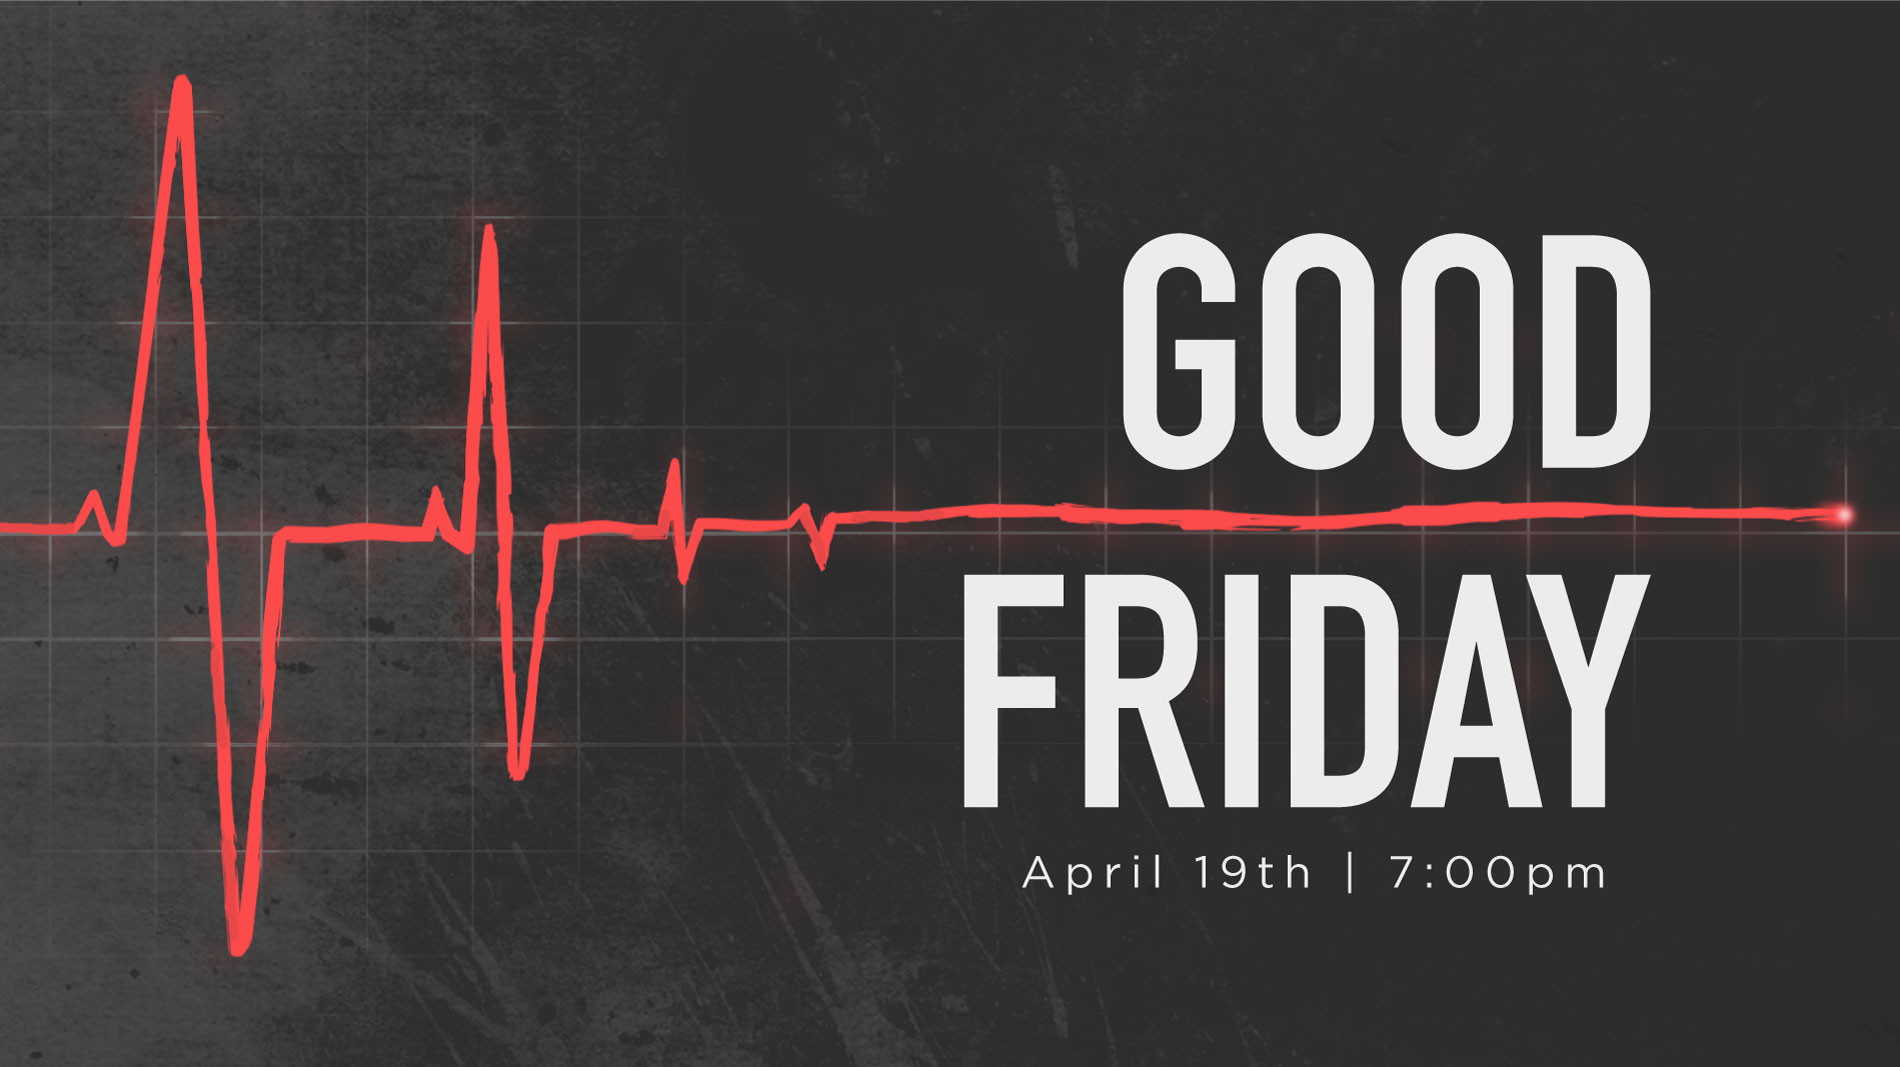 Good-Friday-HD.jpg